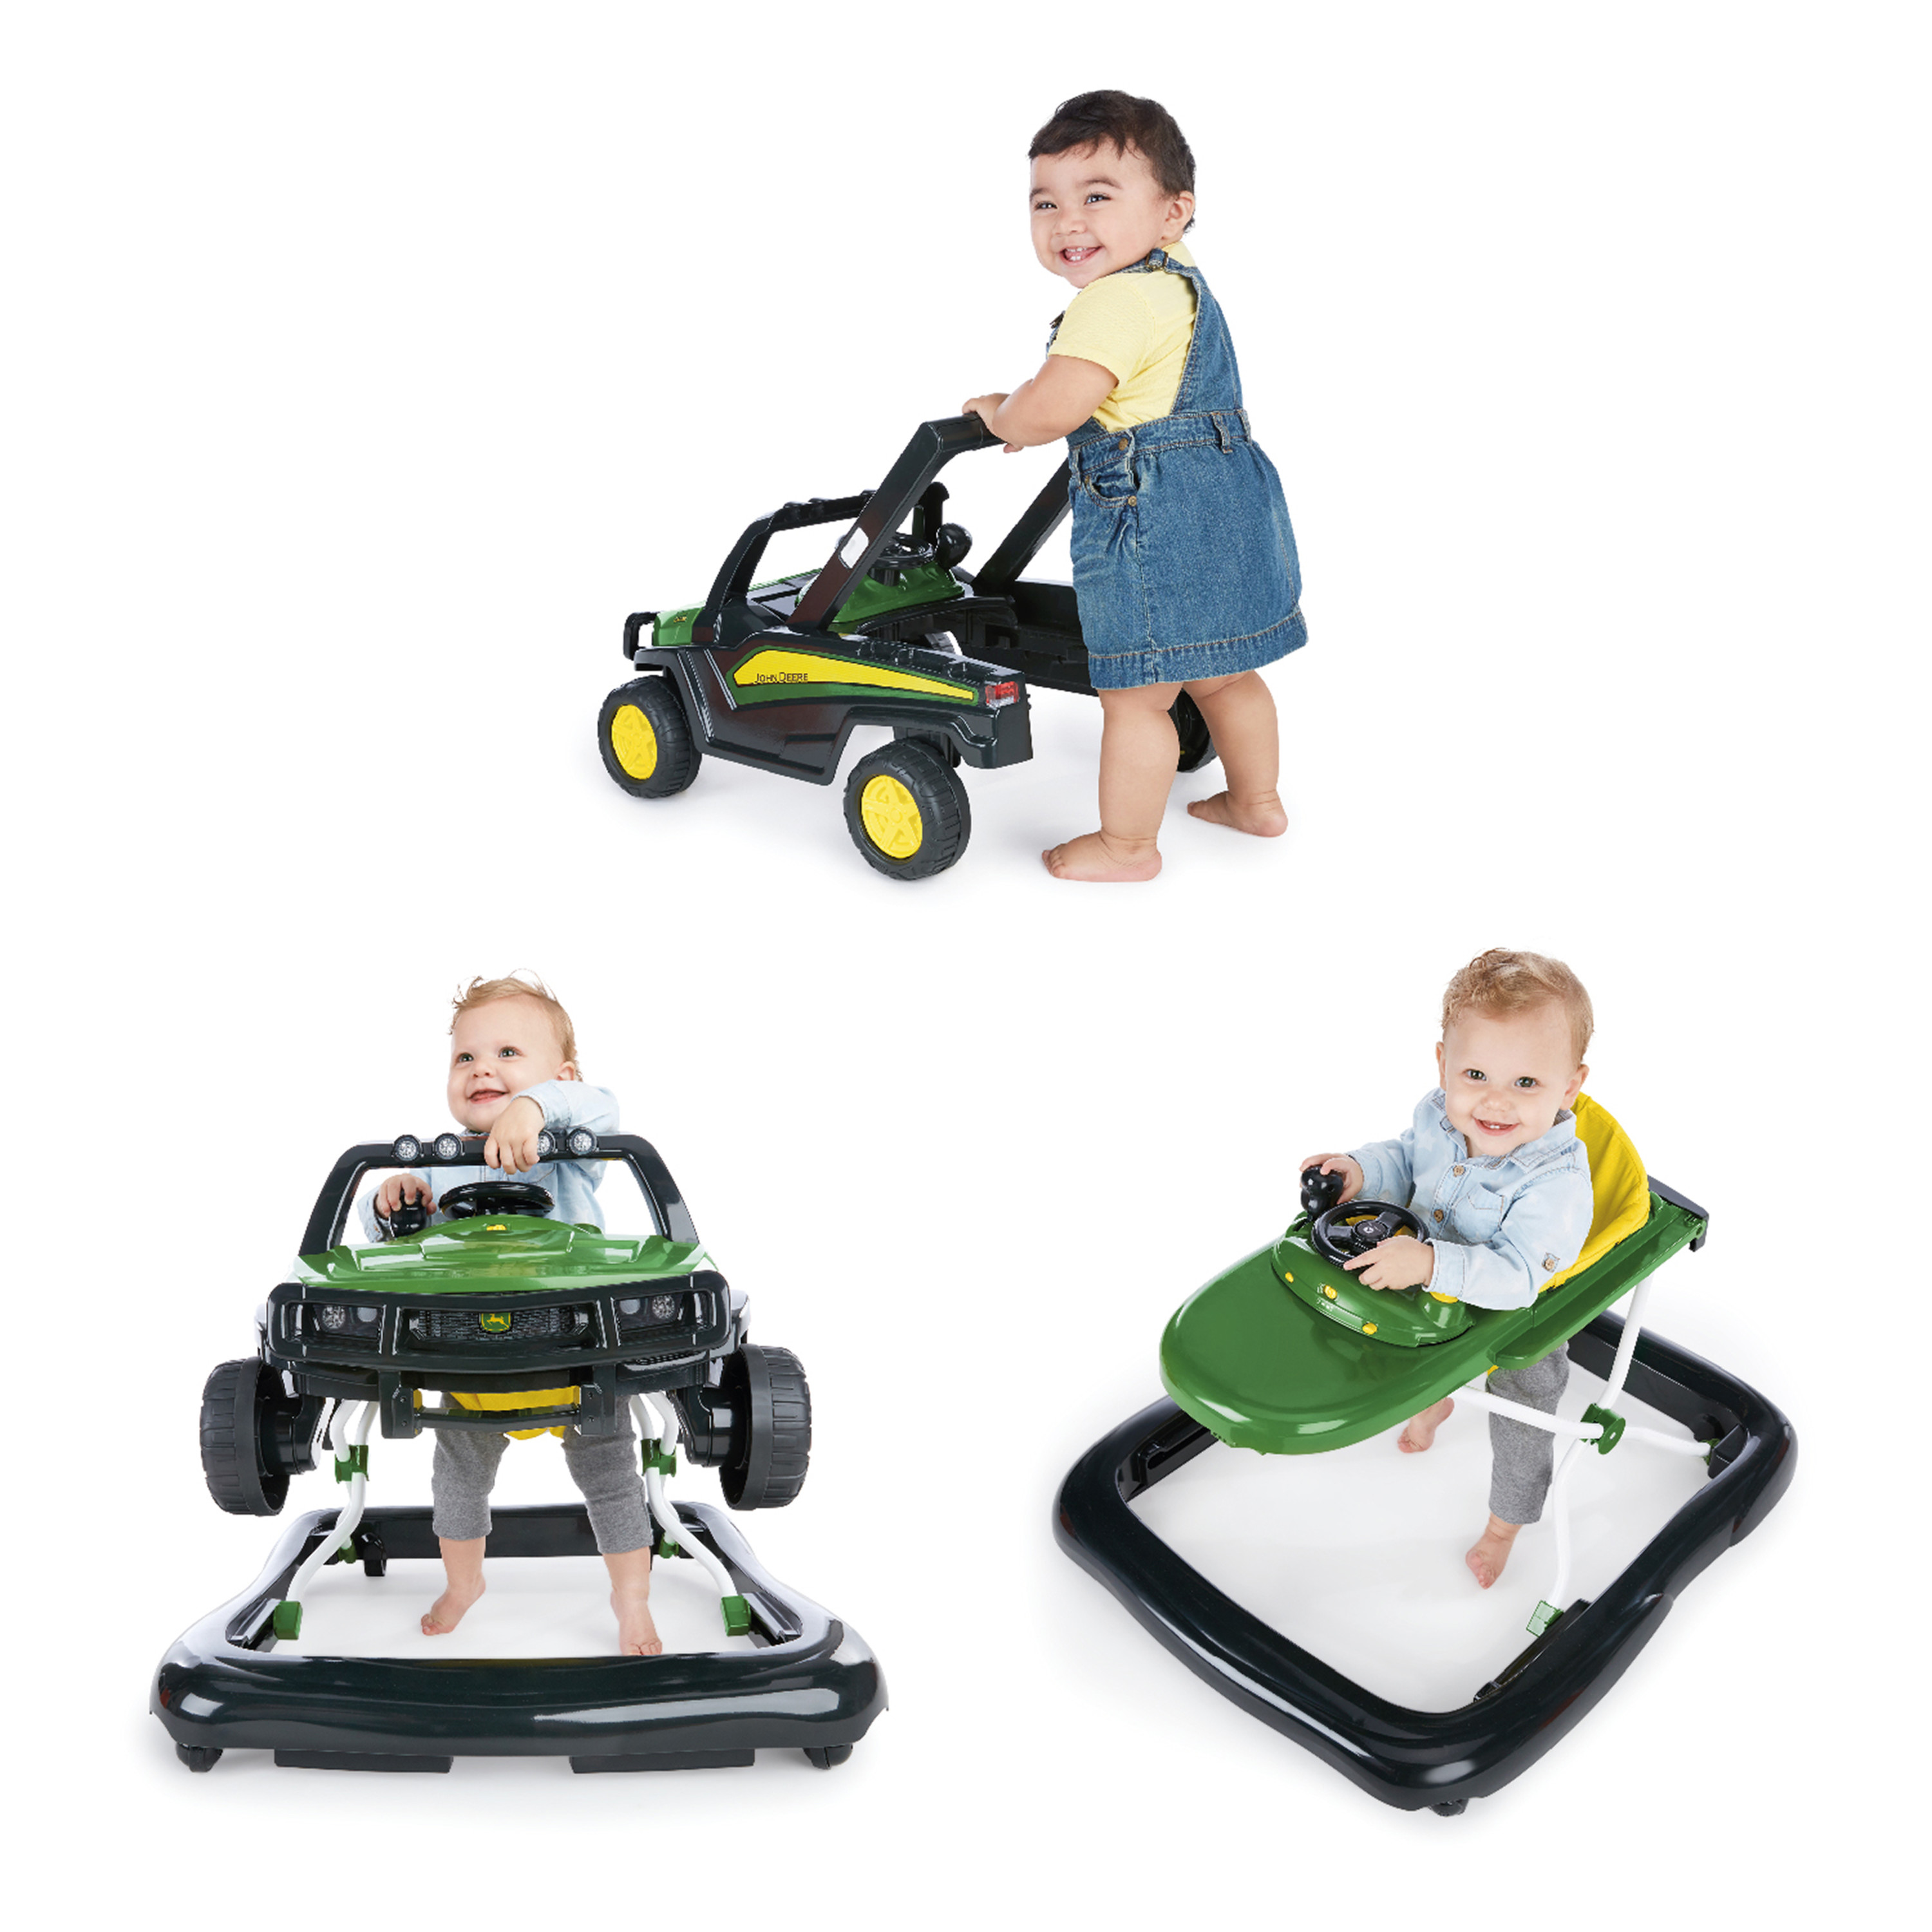 Bright Starts John Deere Gator 3 Ways to Play Walker Activity Station by Bright Starts